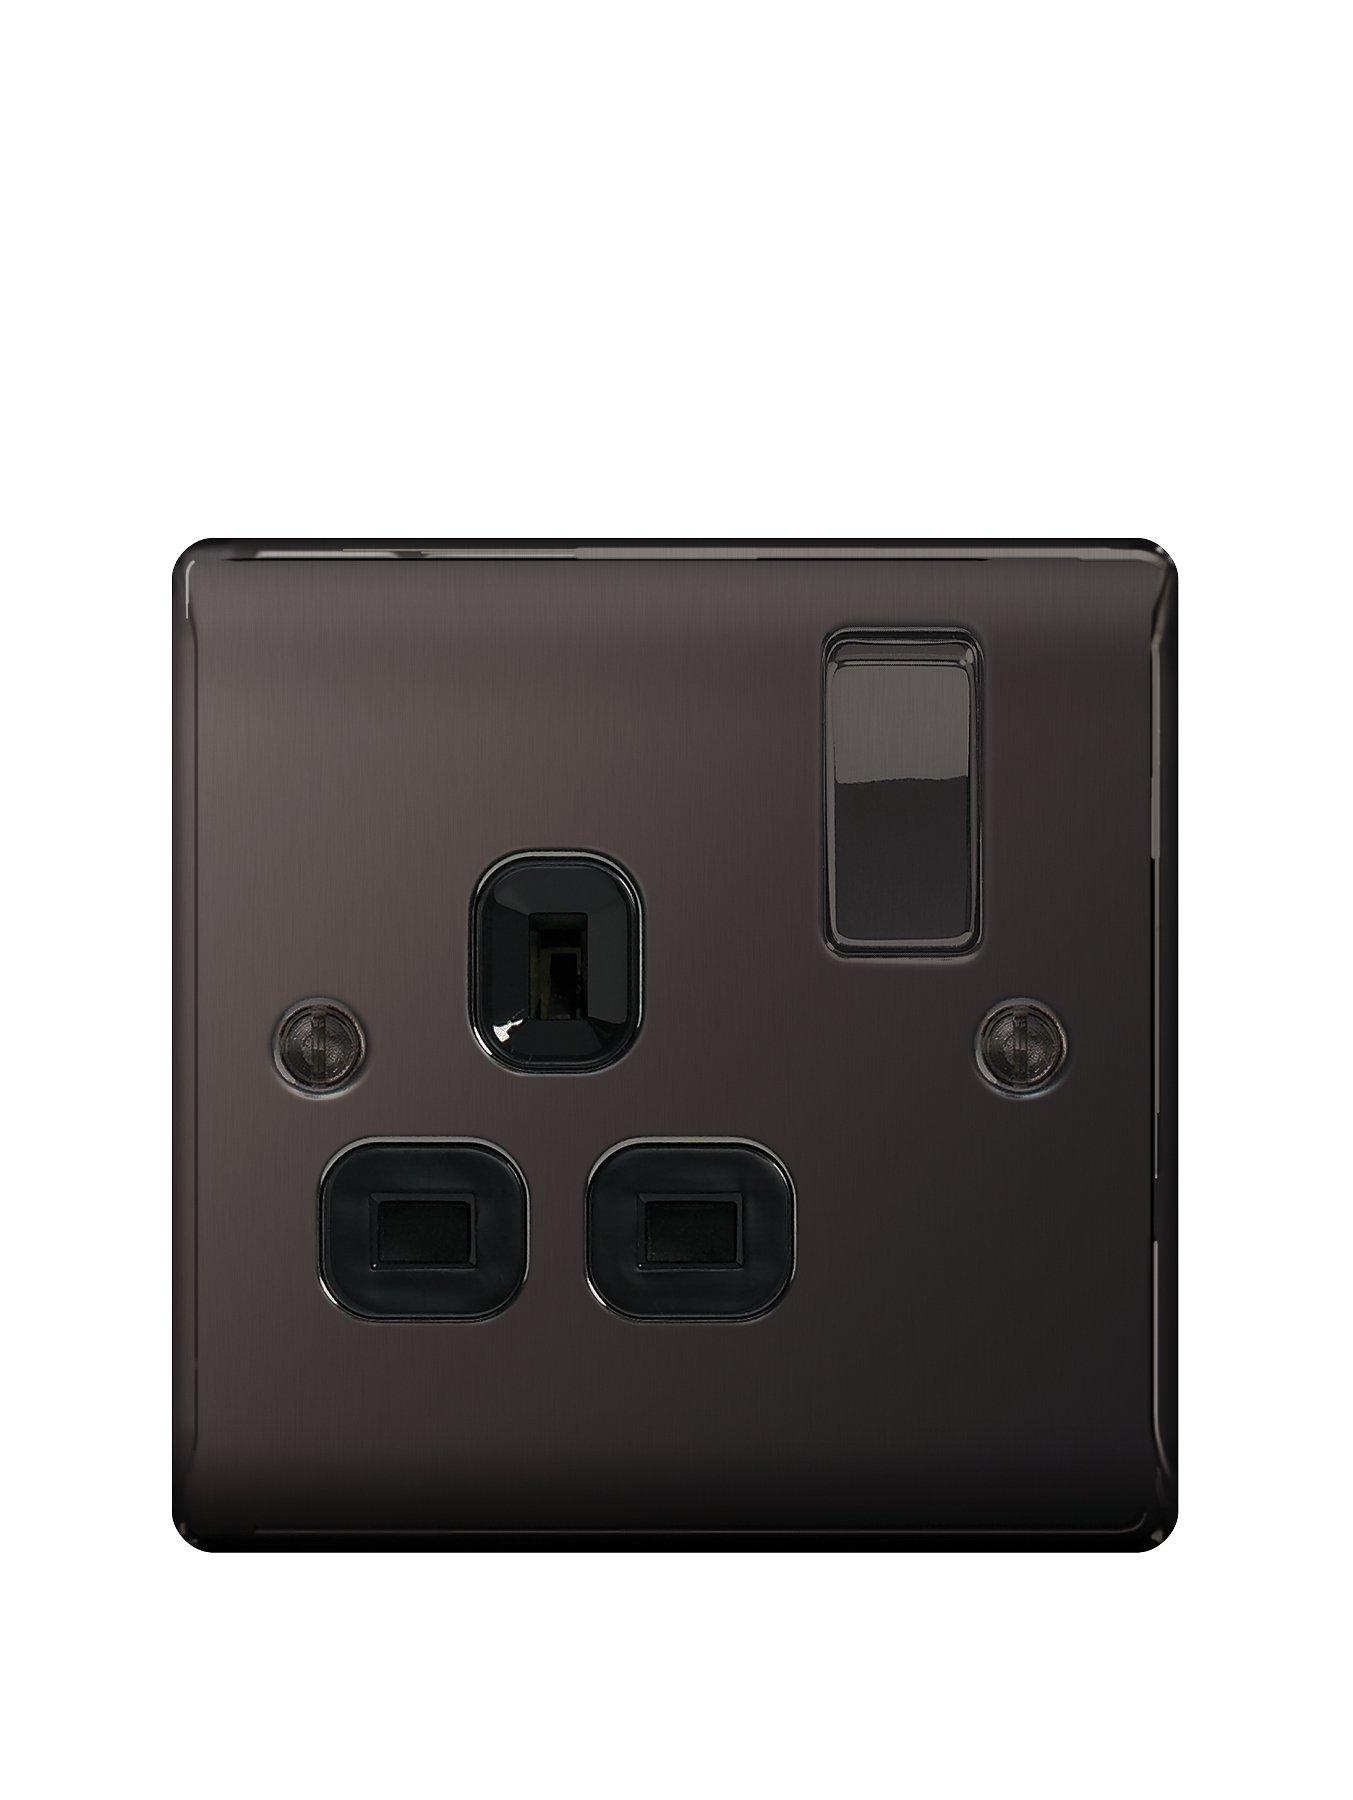 Compare prices for British General Electrical Raised 1G Switched Socket 13 Amp - Black Nickel